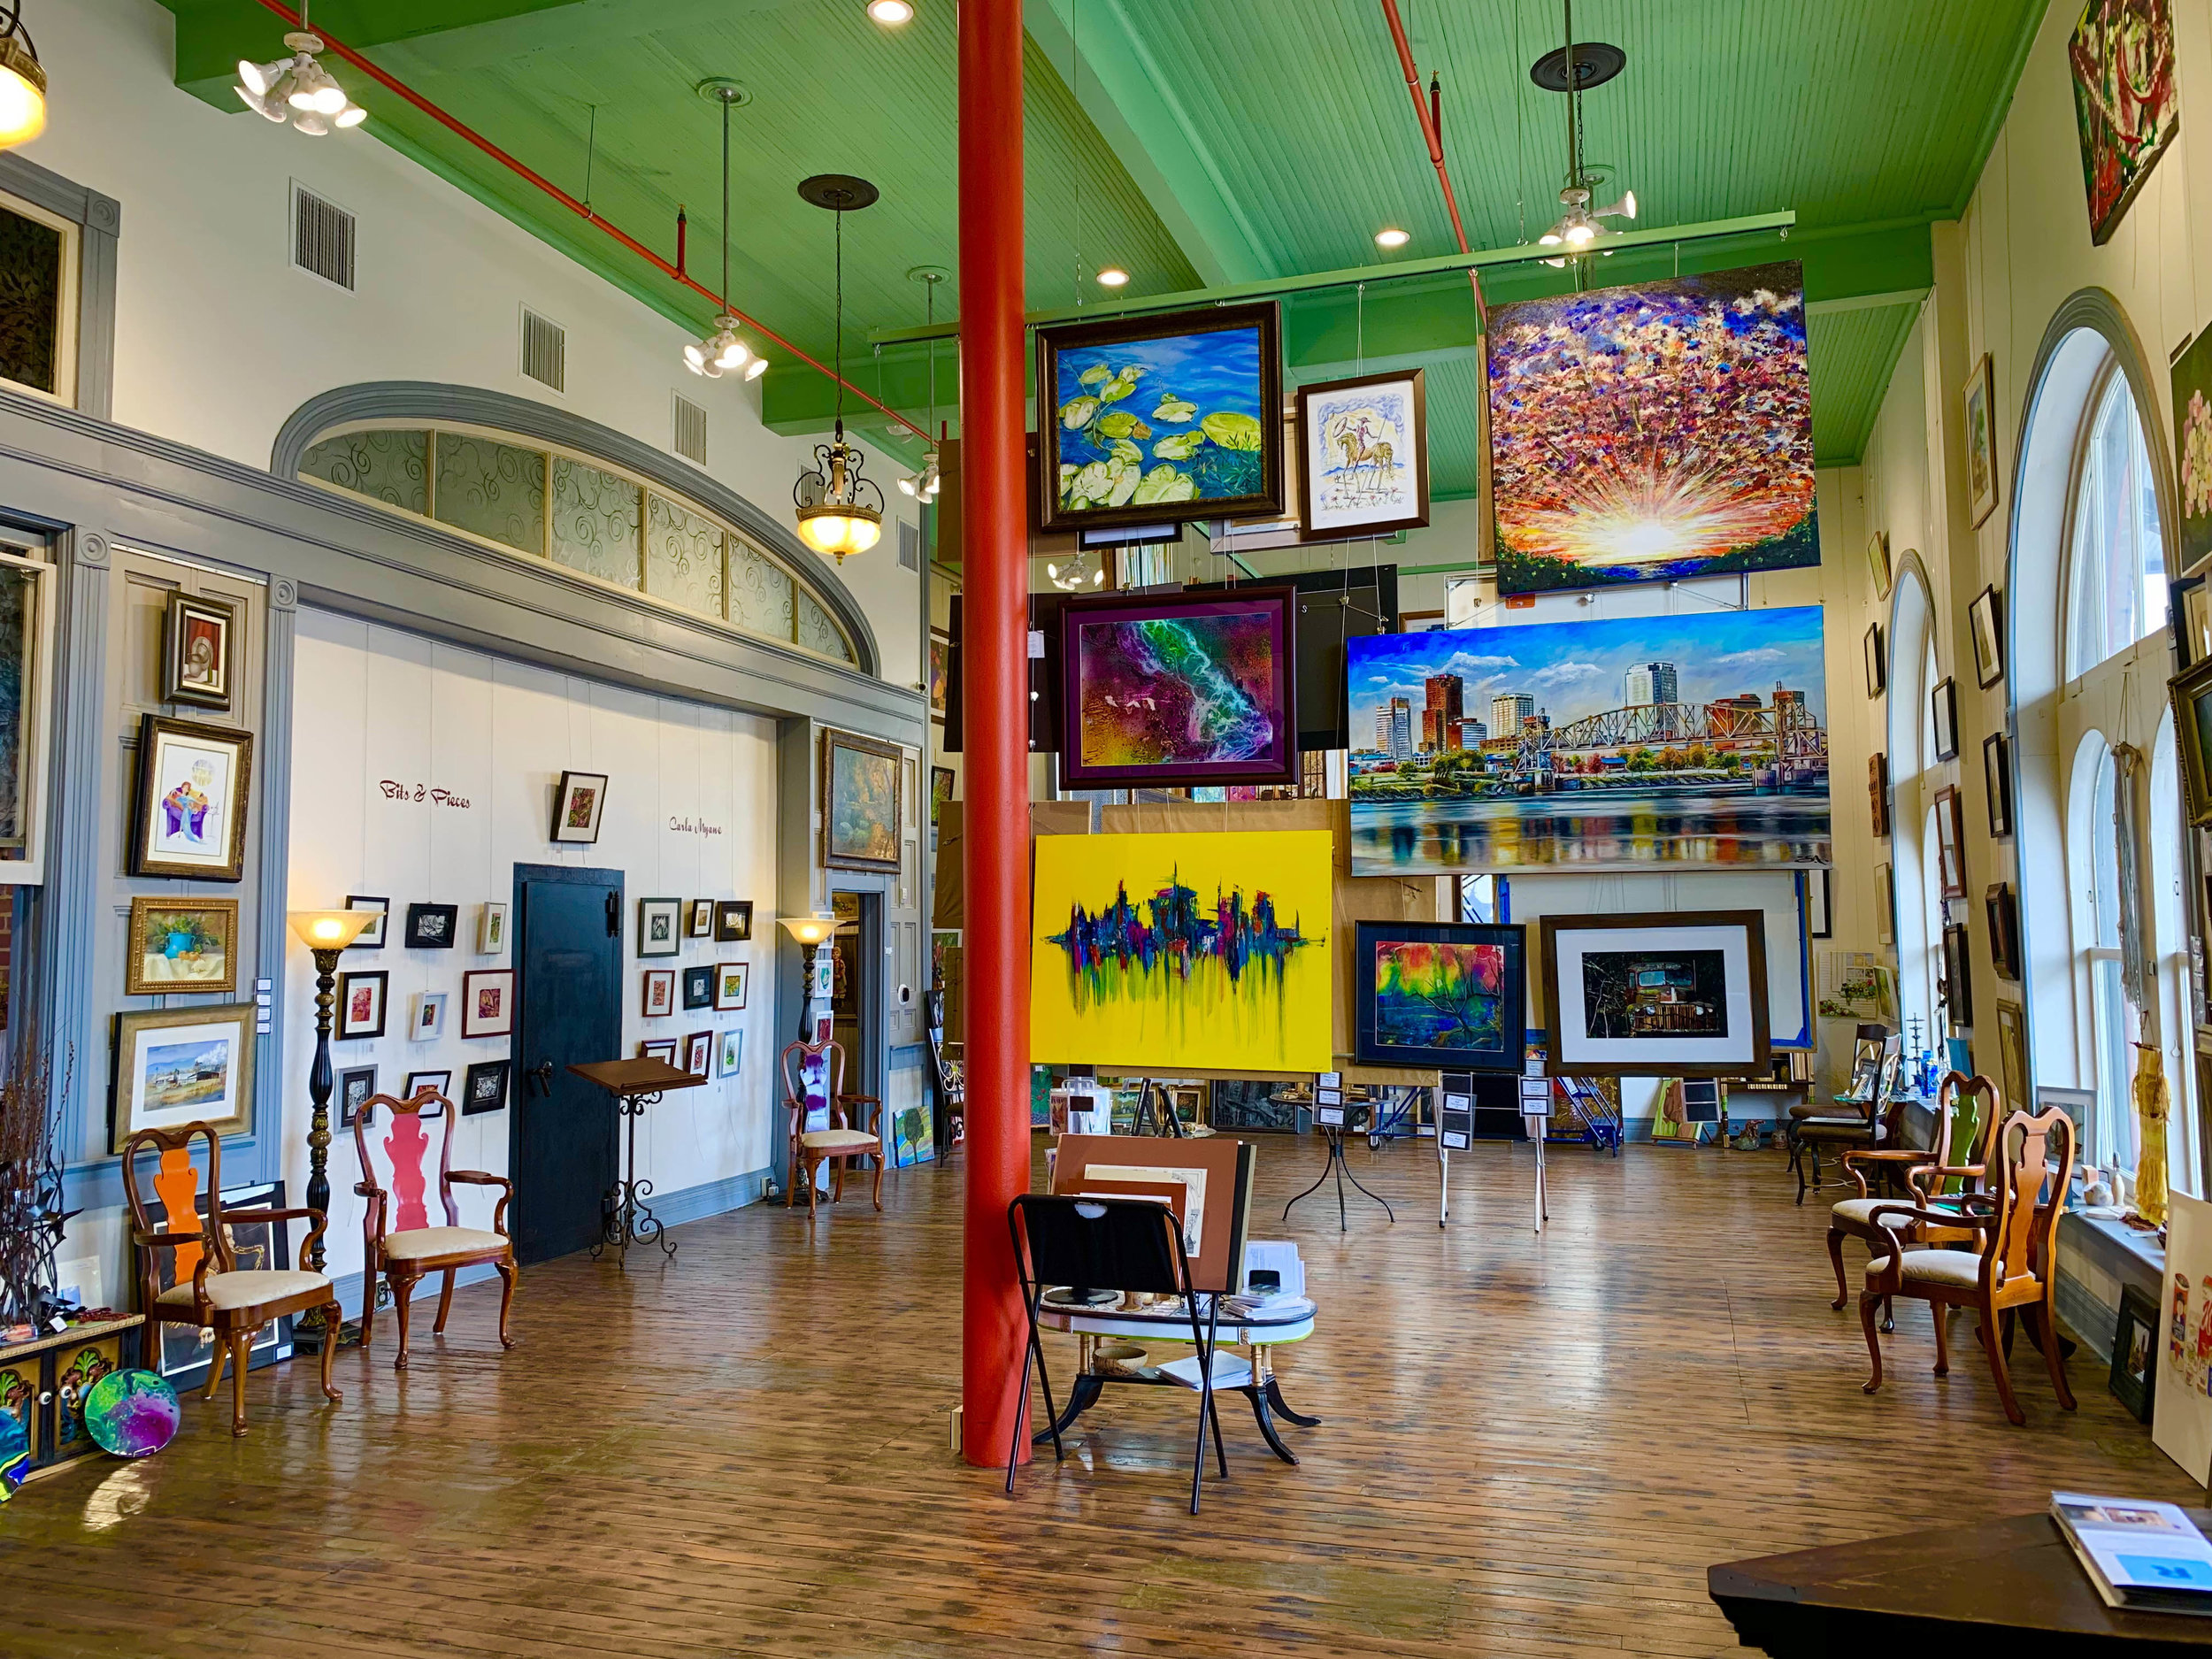 This photo shows the renovations done to the 1894 Art Gallery located inside the 1894 City Market.